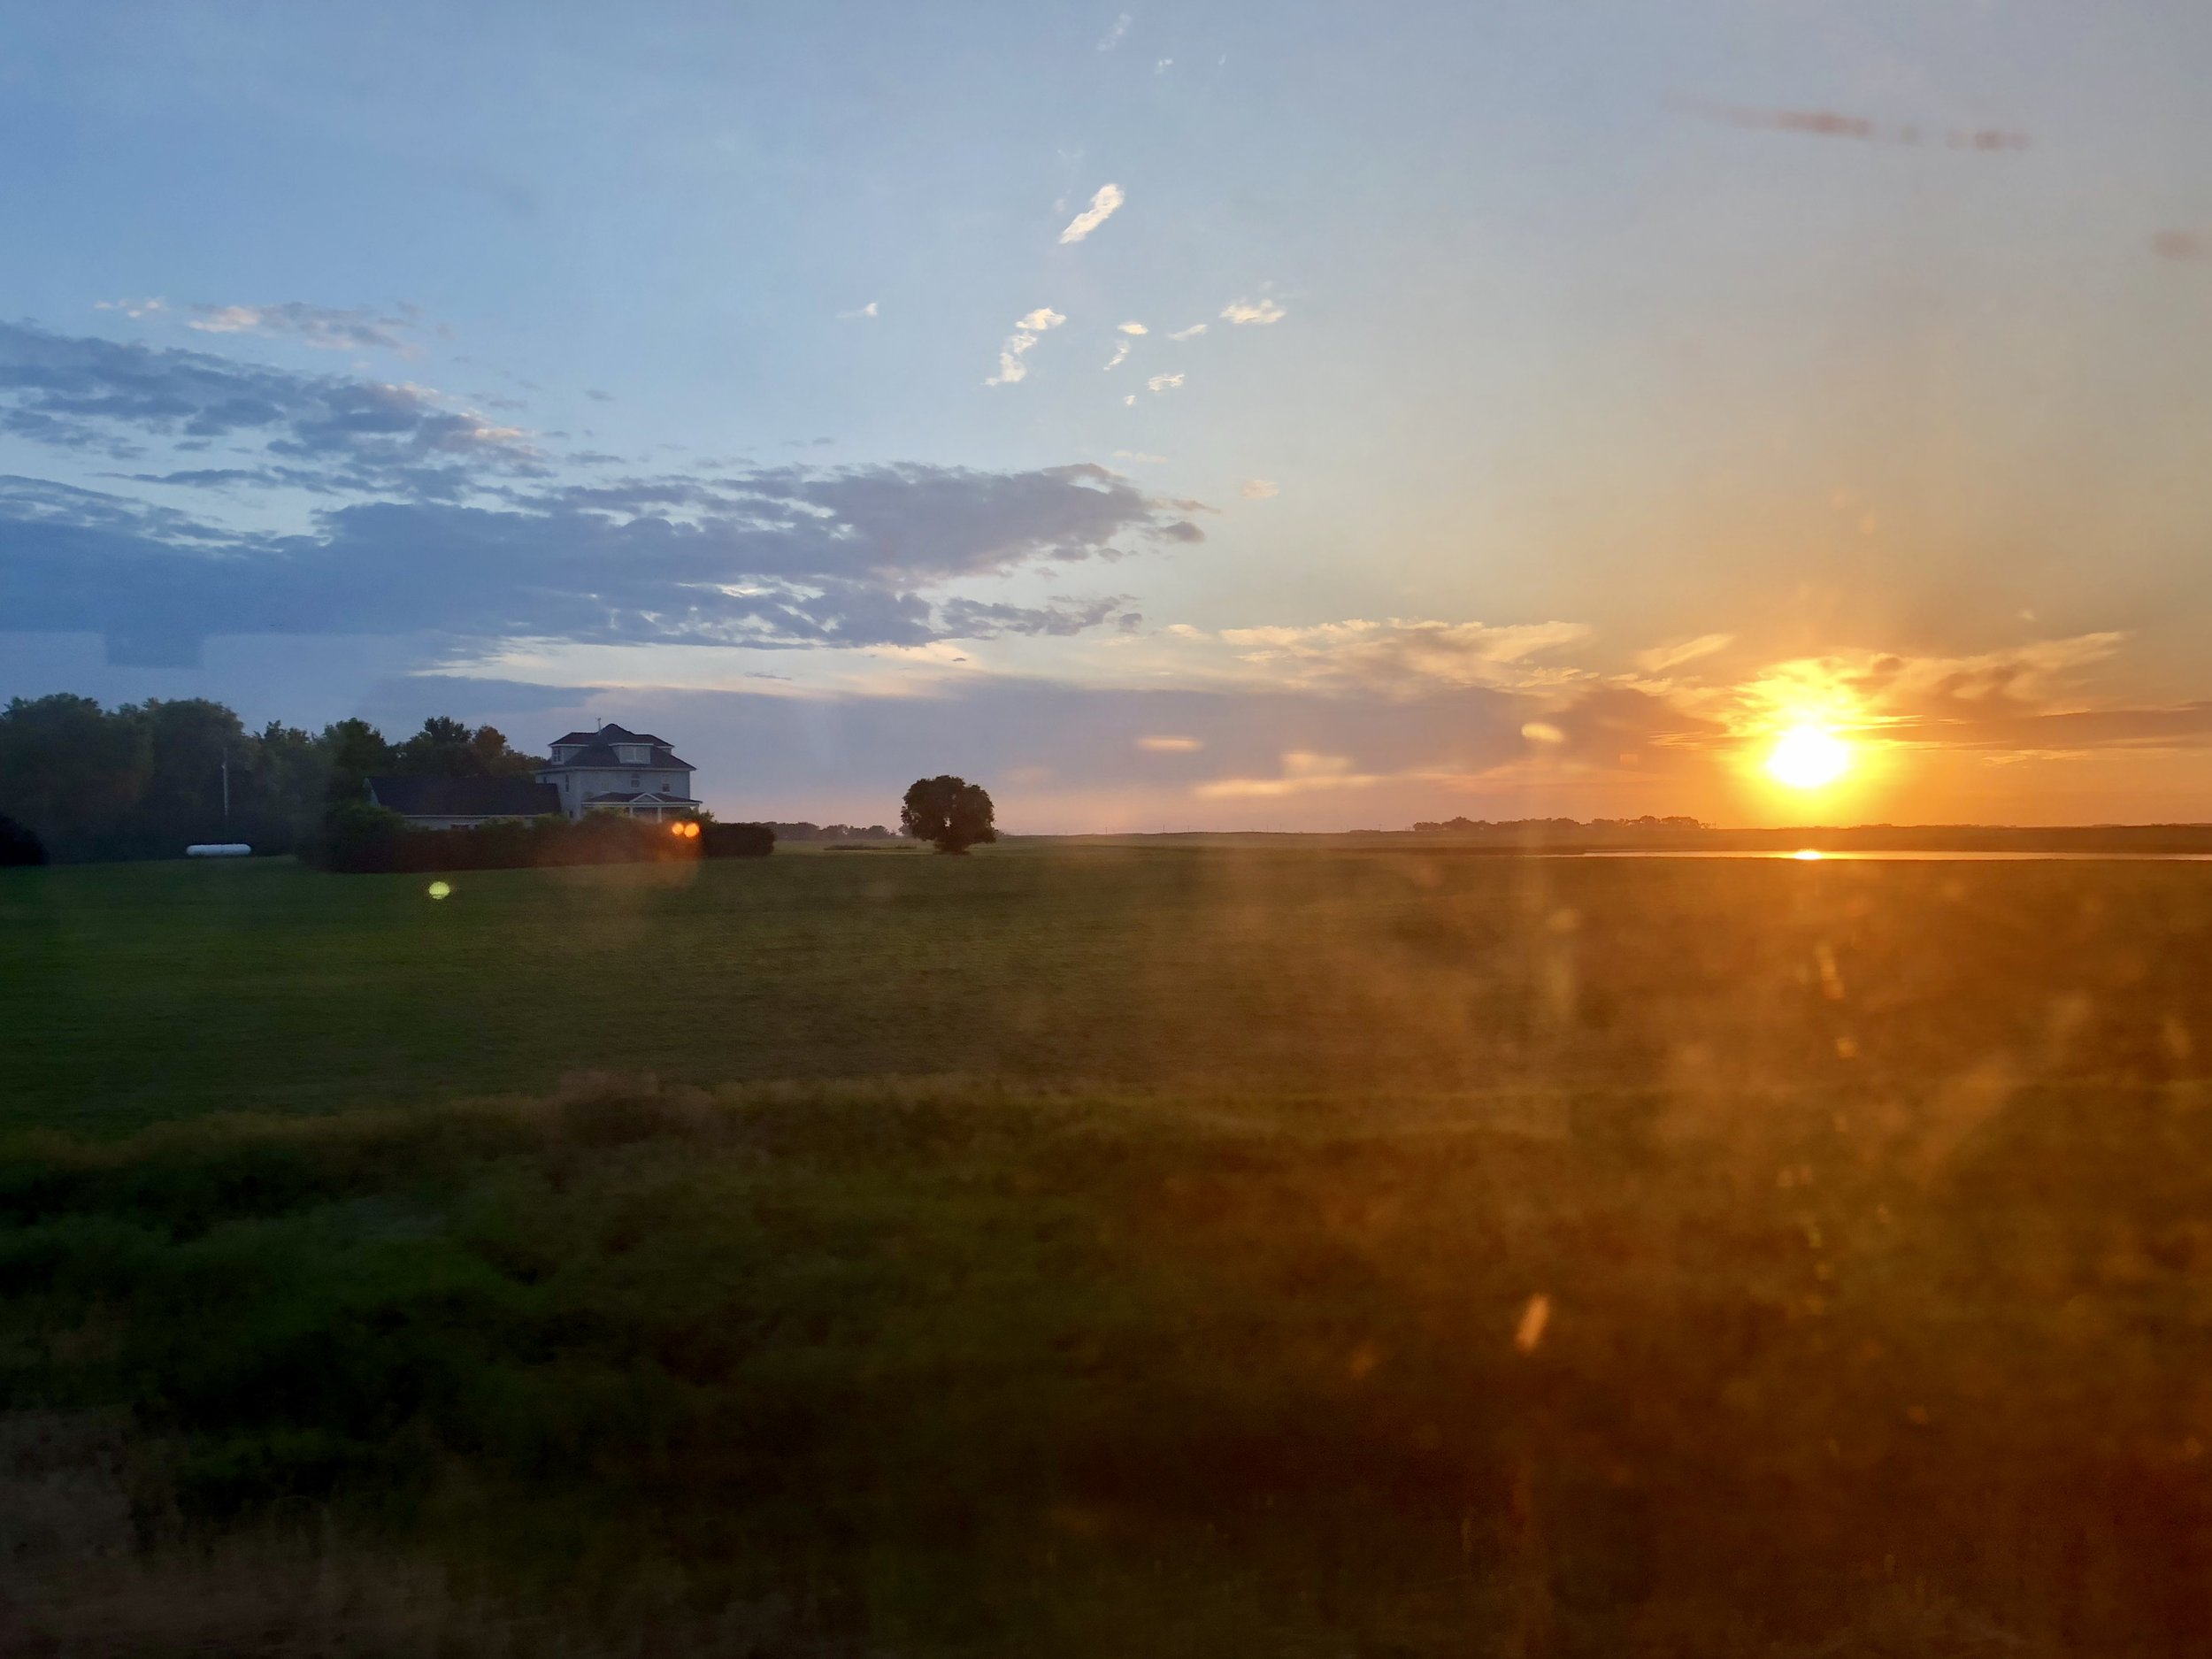 Minnesota sunset from the window of the train.